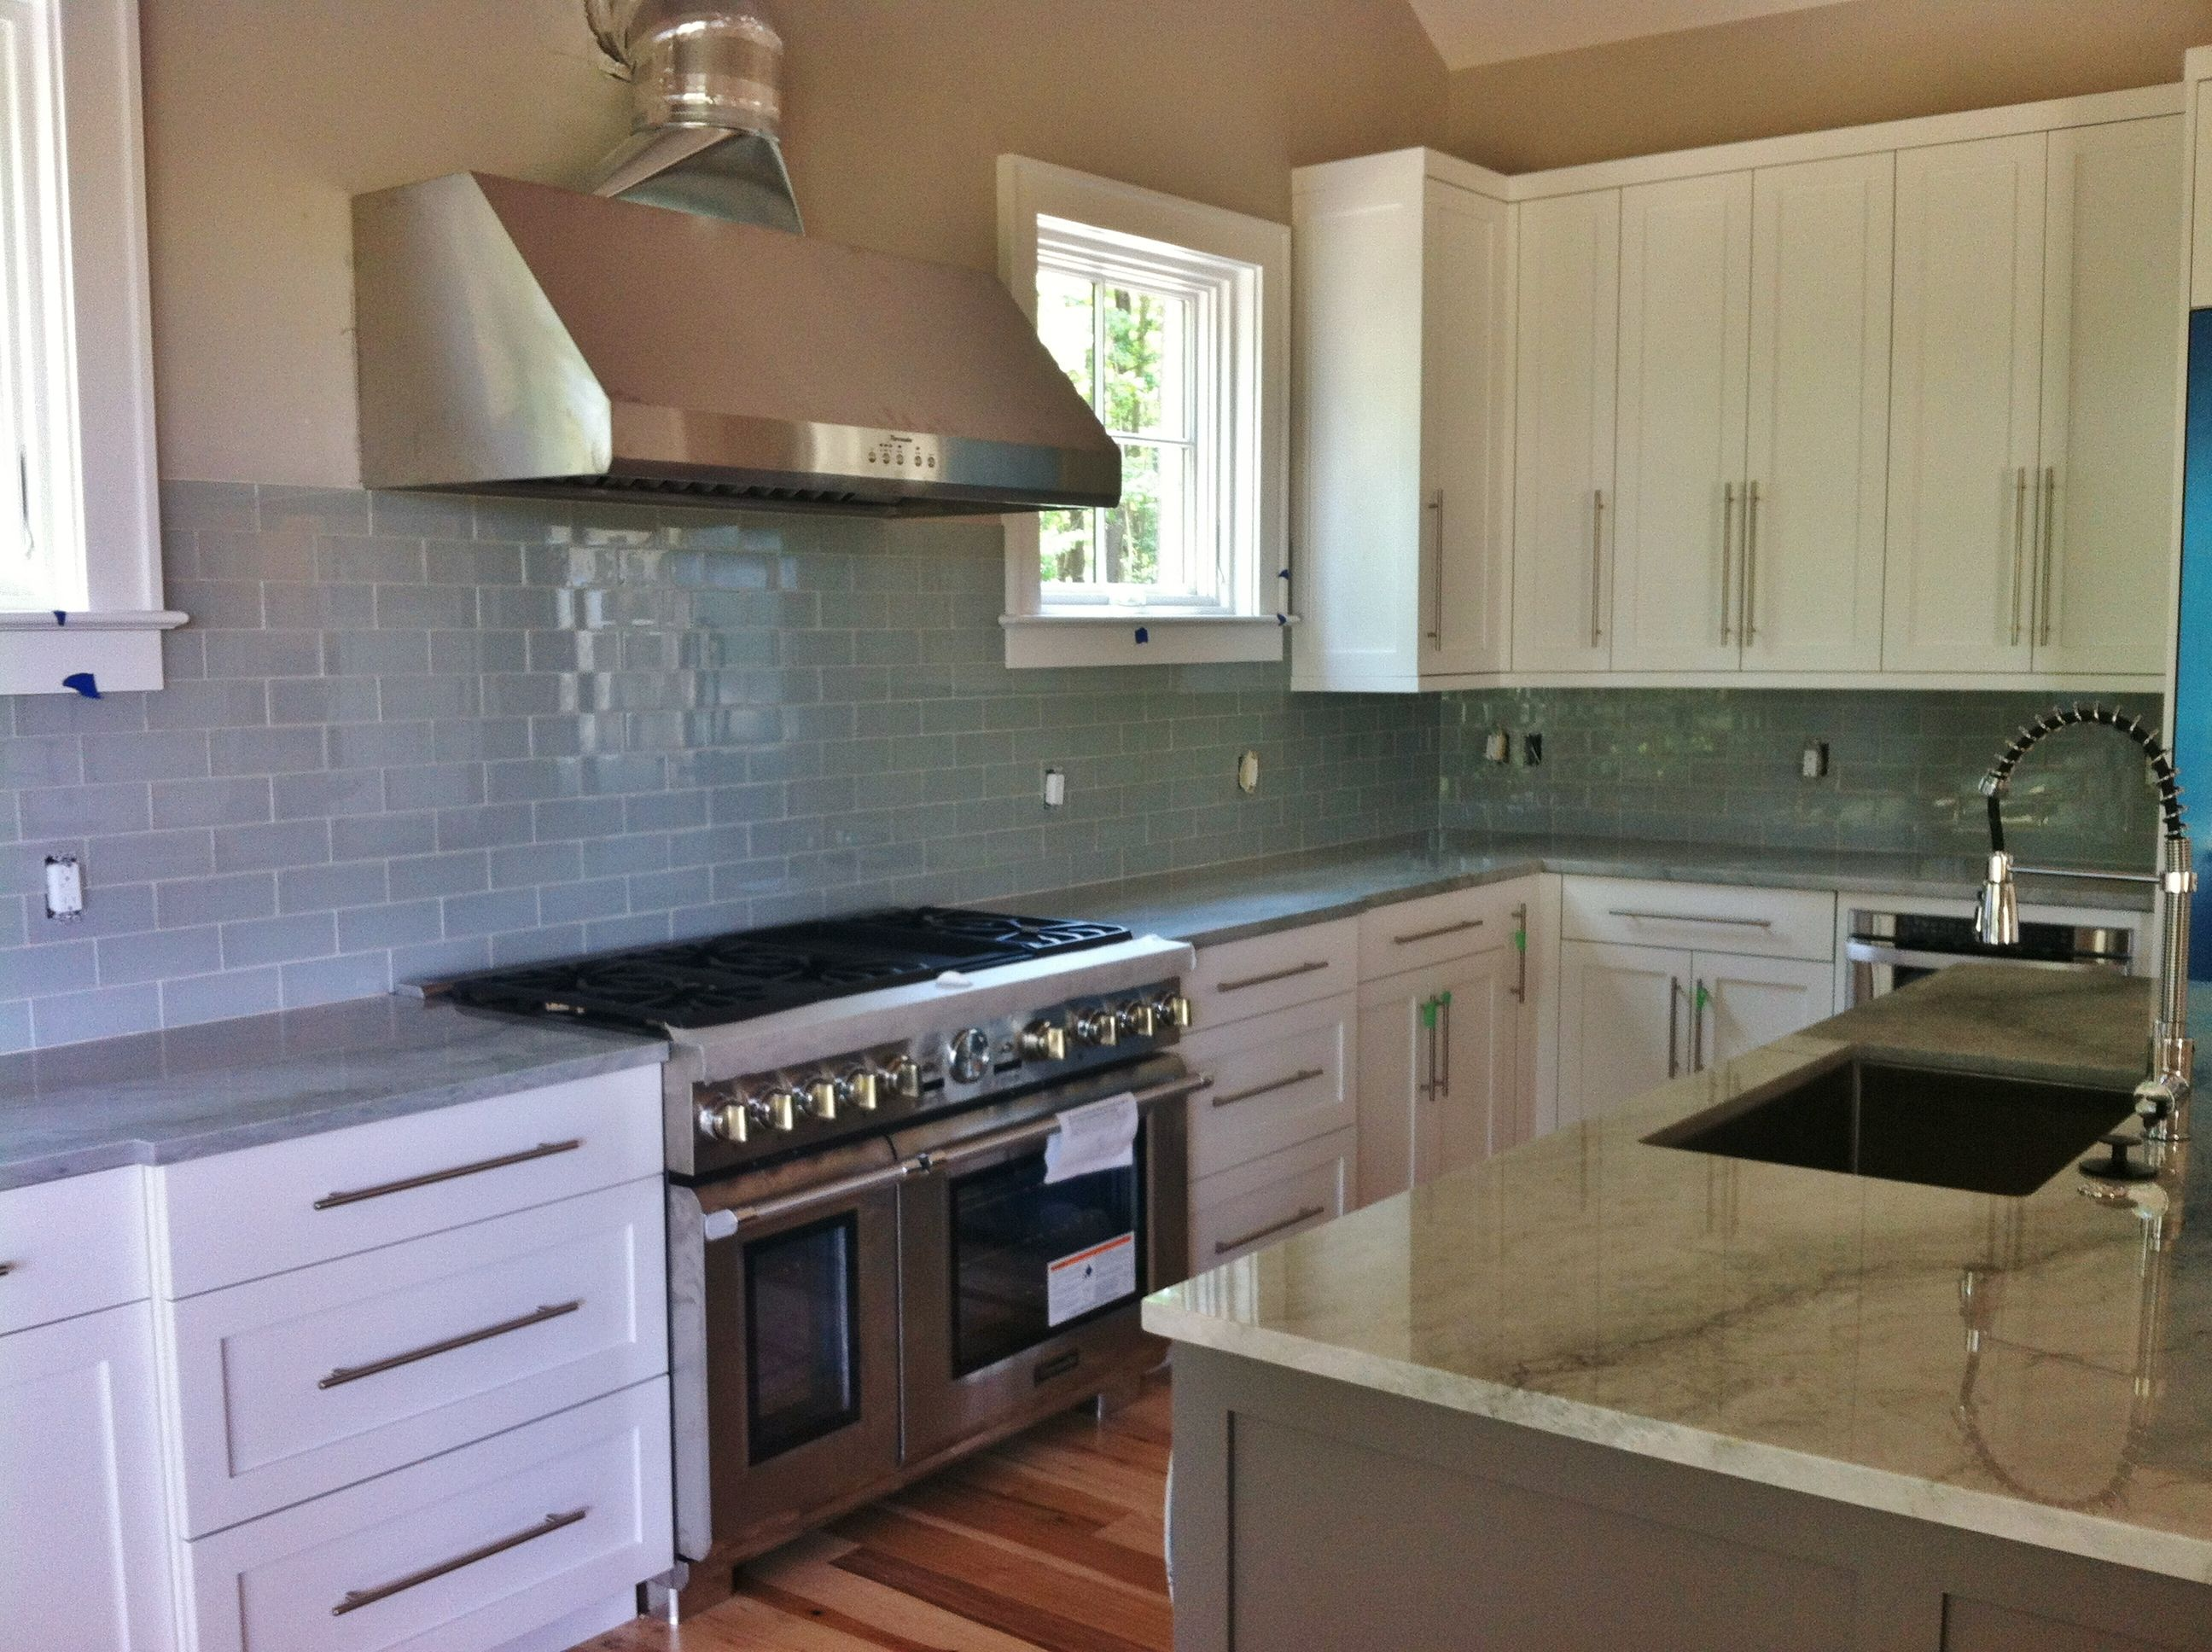 3x8 Frost Glass Tile At Kitchen And Butler S Pantry Backsplashes